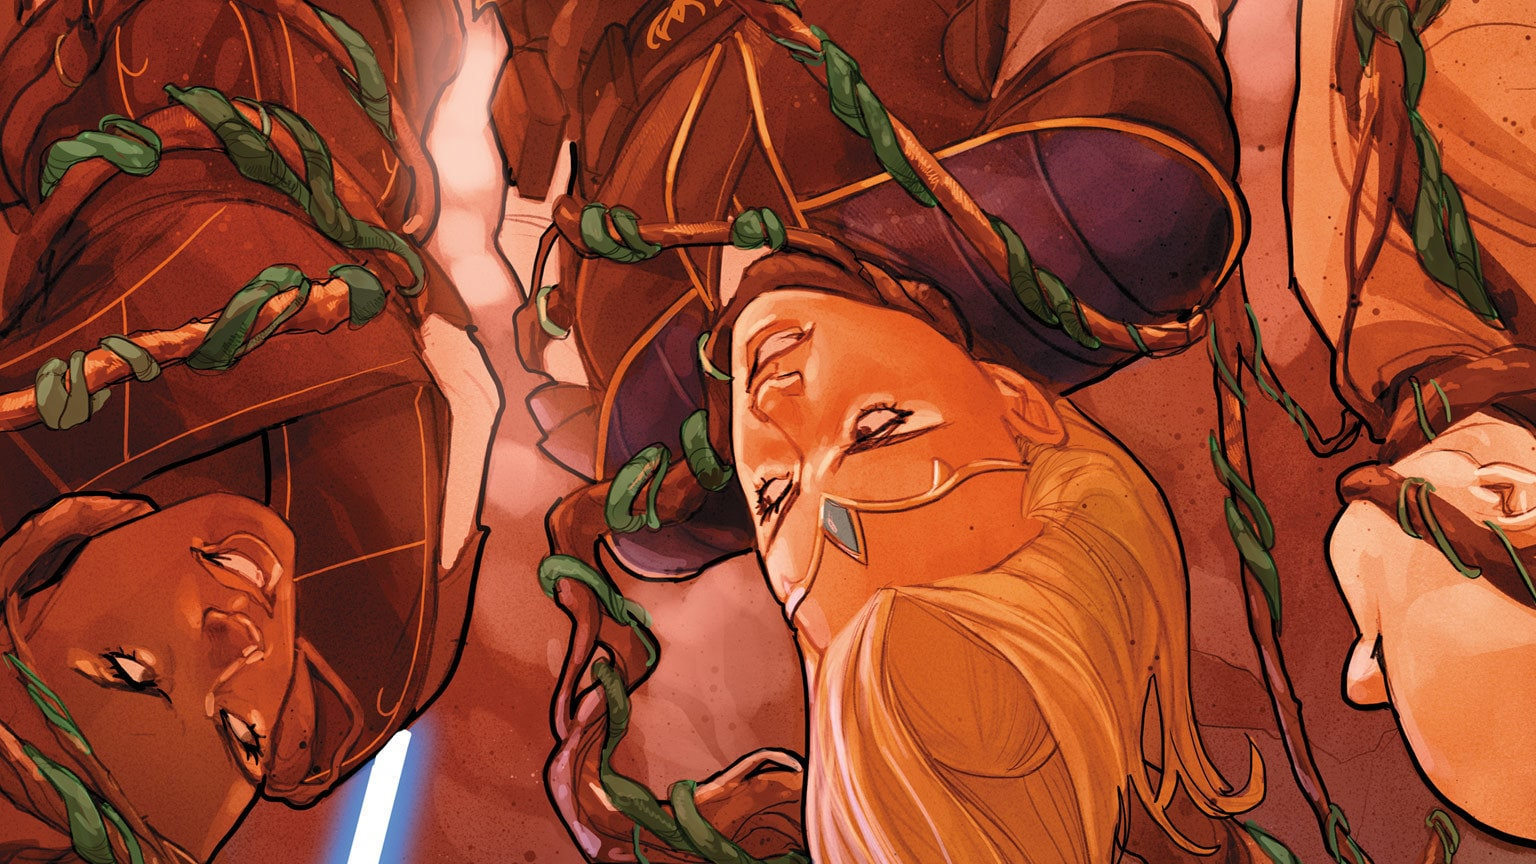 Keeve Trennis Faces her Fears in Marvel's Star Wars: The High Republic #4 – Exclusive Preview